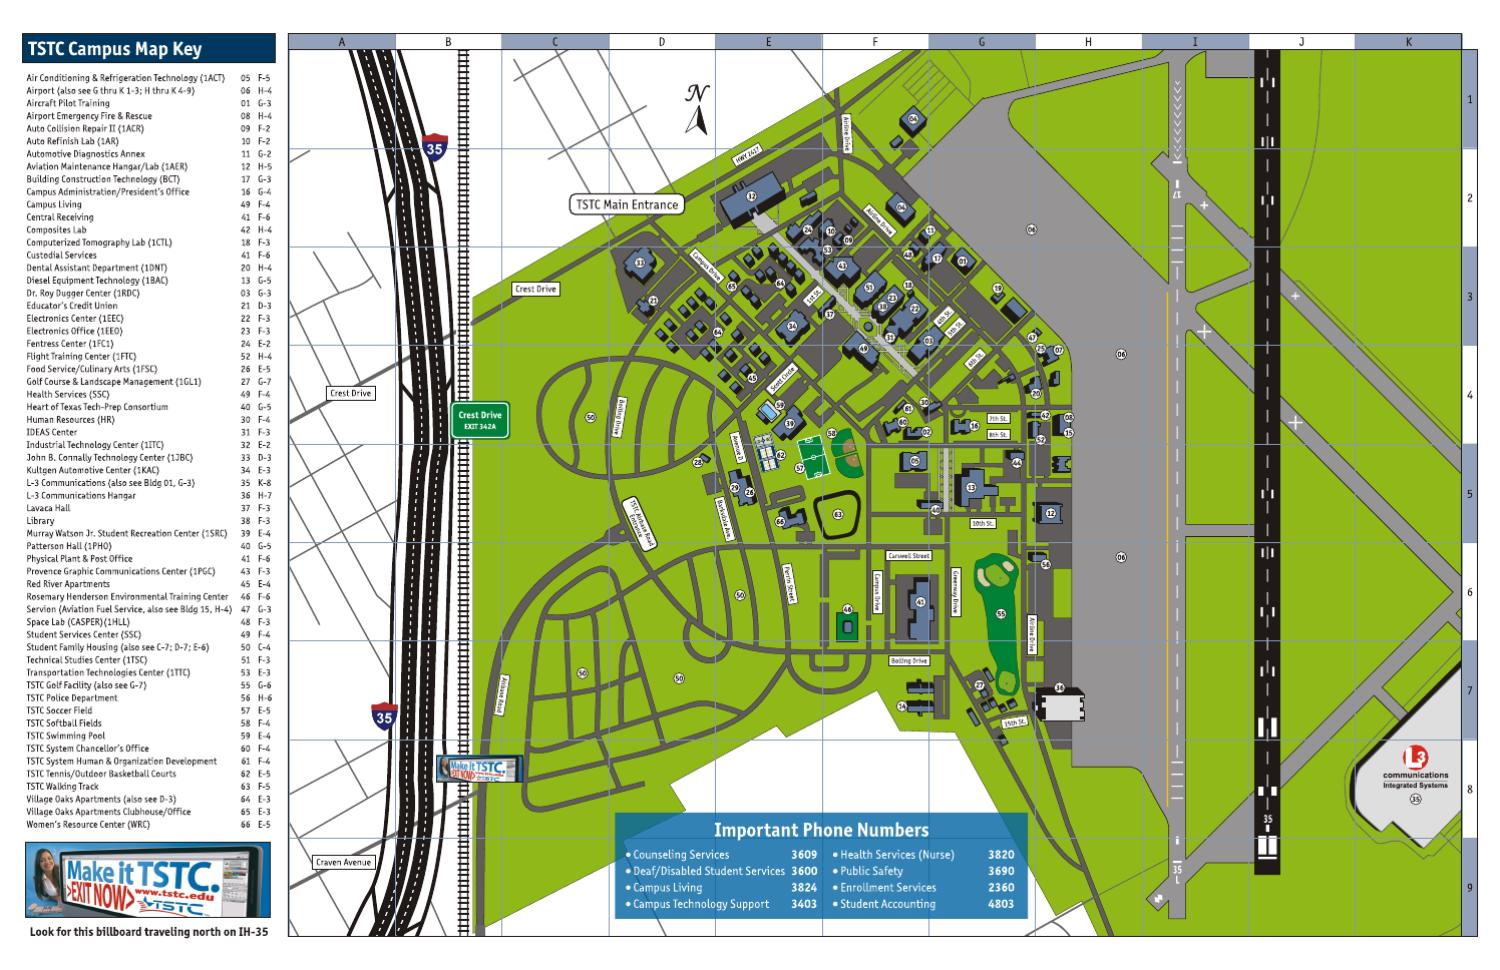 TSTC Waco Campus Map by TSTC Waco   issuu